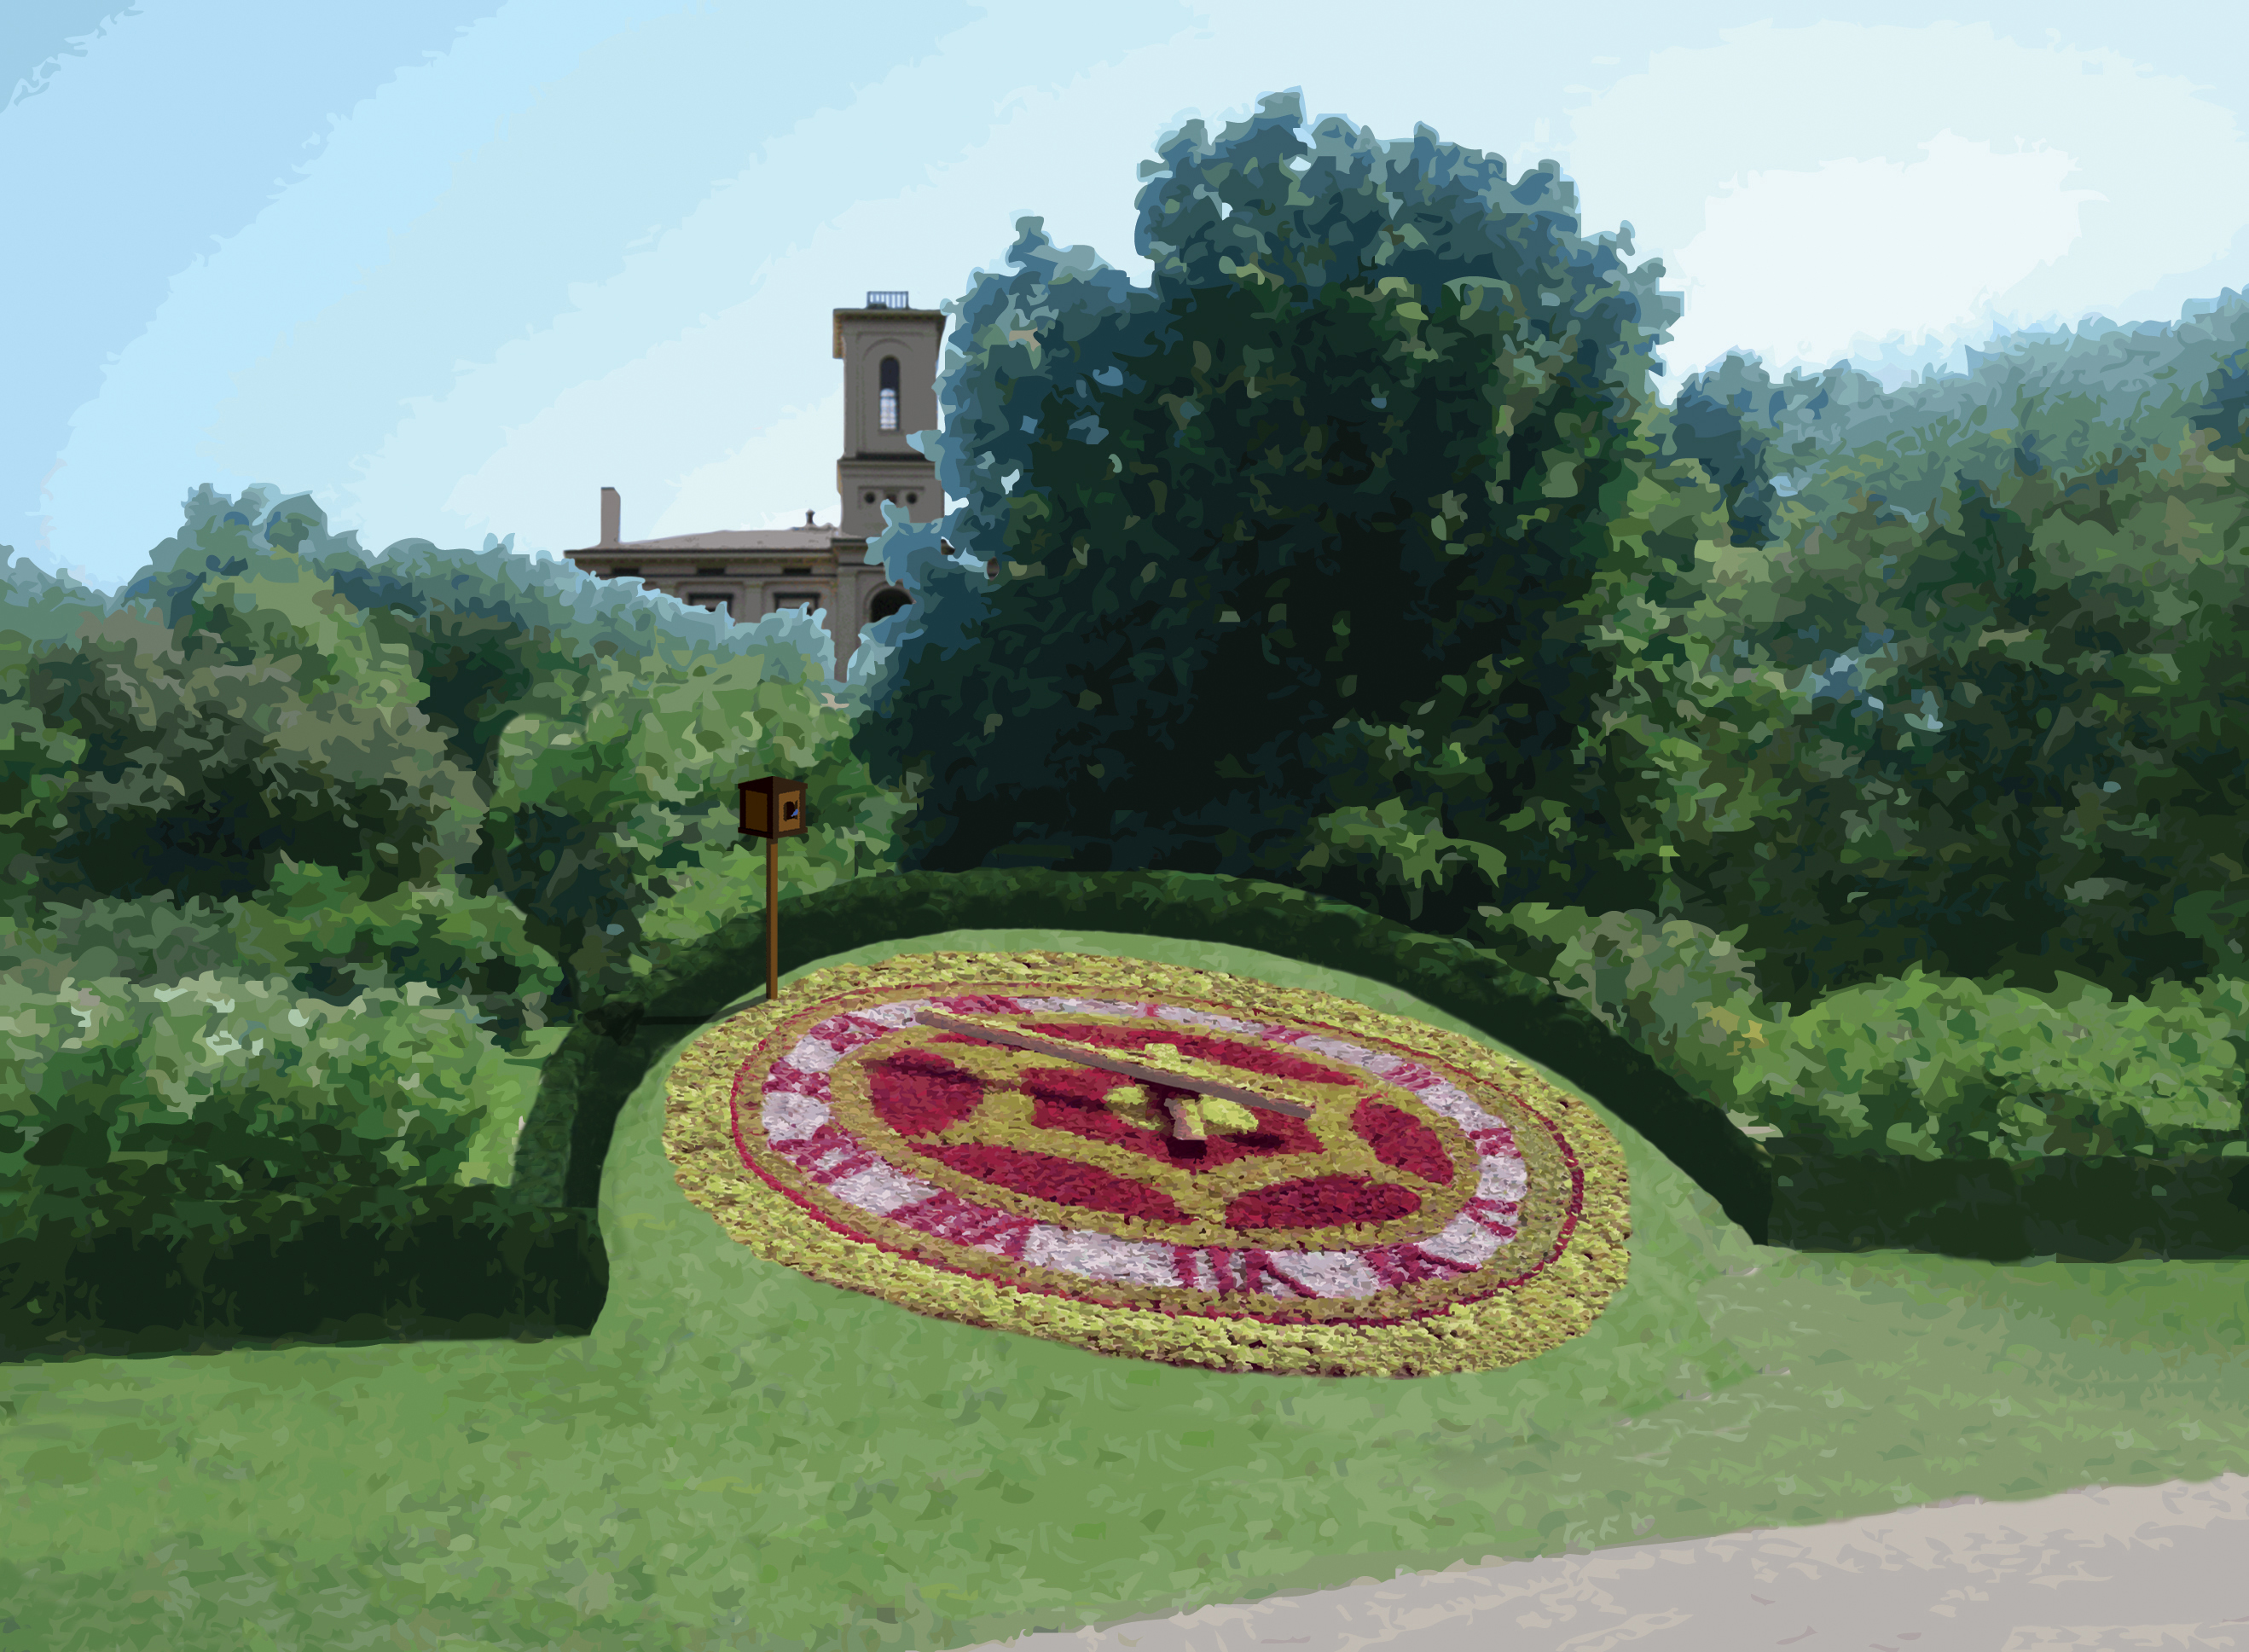 graphic rendering of the sesquicentennial floral clock at the missouri botanical garden on display from may through october 2009 in honor of the - Missouri Botanical Garden Hours